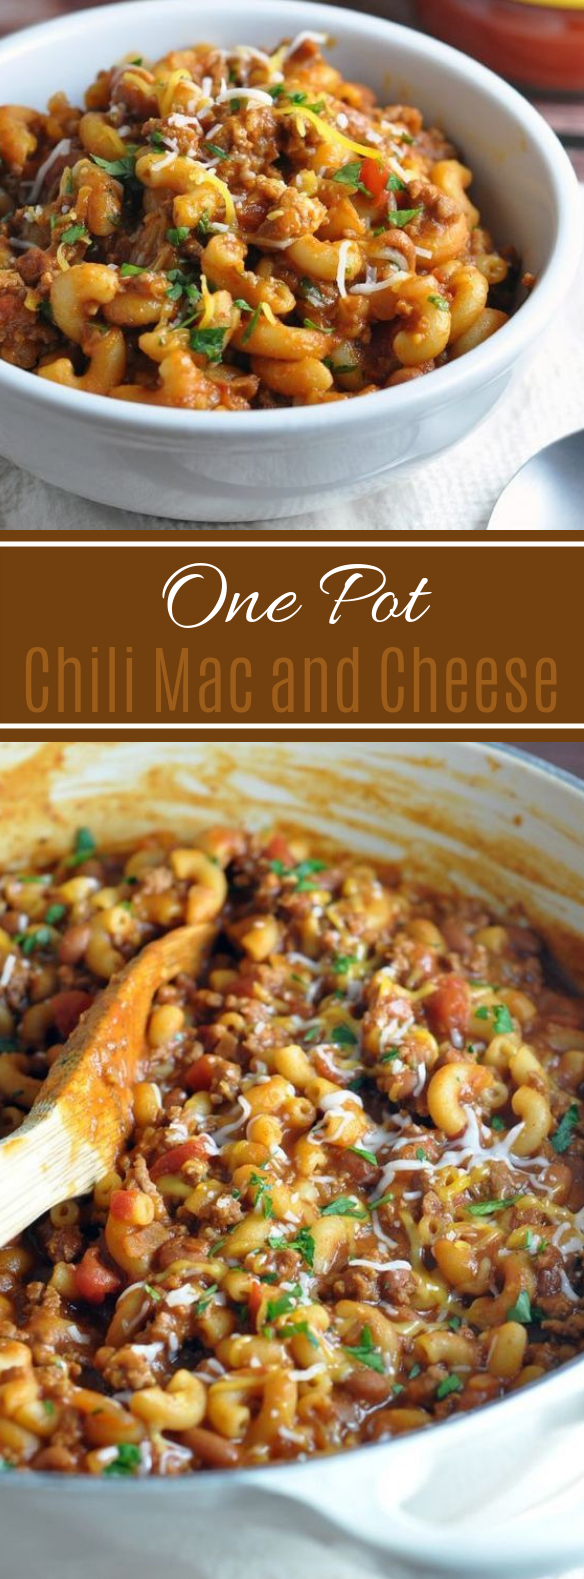 One Pot Chili Mac and Cheese #comfortfood #dinner